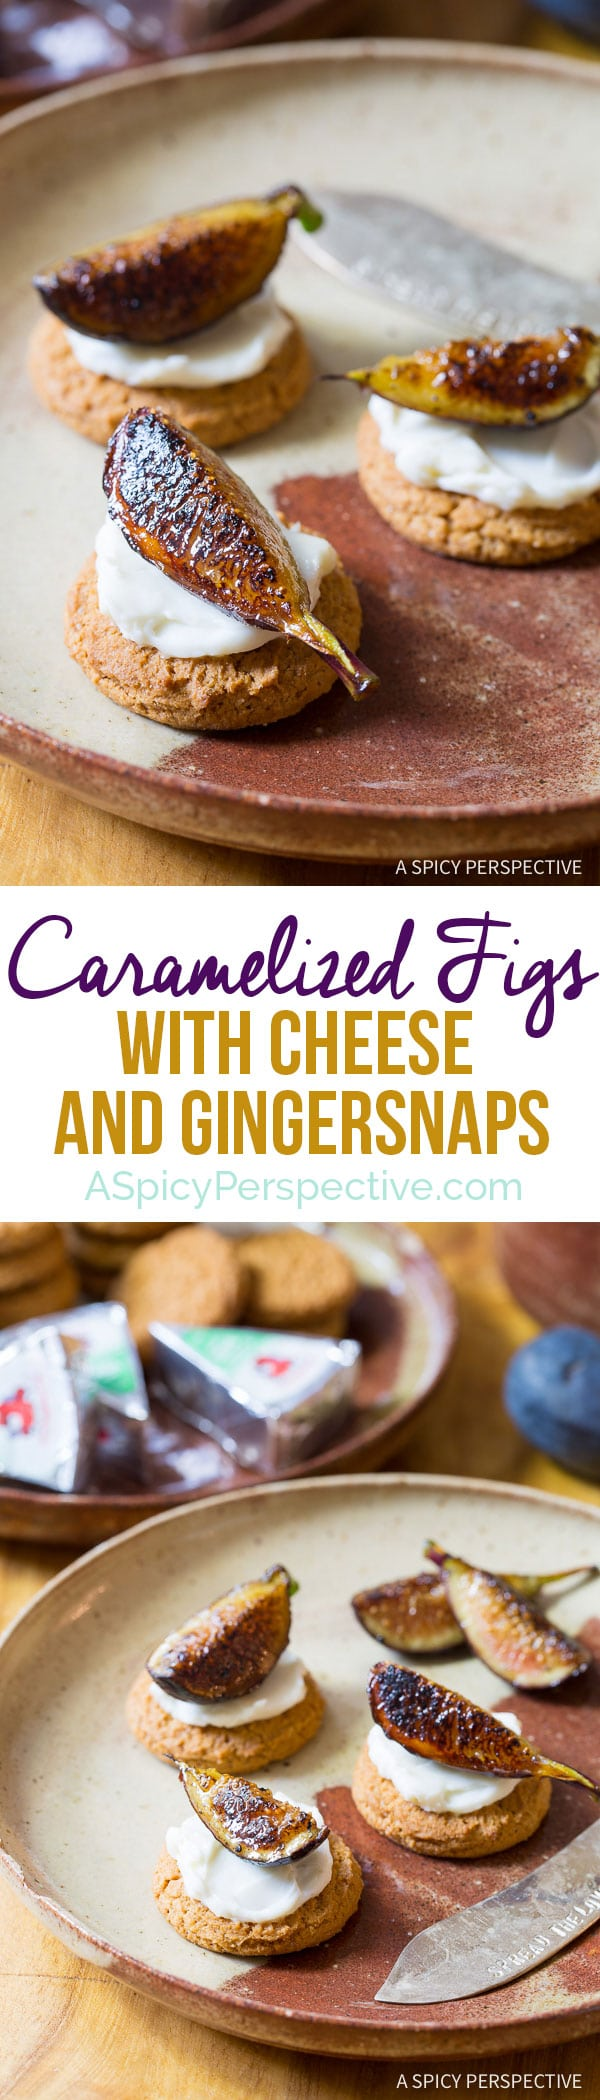 Amazing Reinvented Snacks - Caramelized Figs with Cheese and Gingersnaps on ASpicyPerspective.com